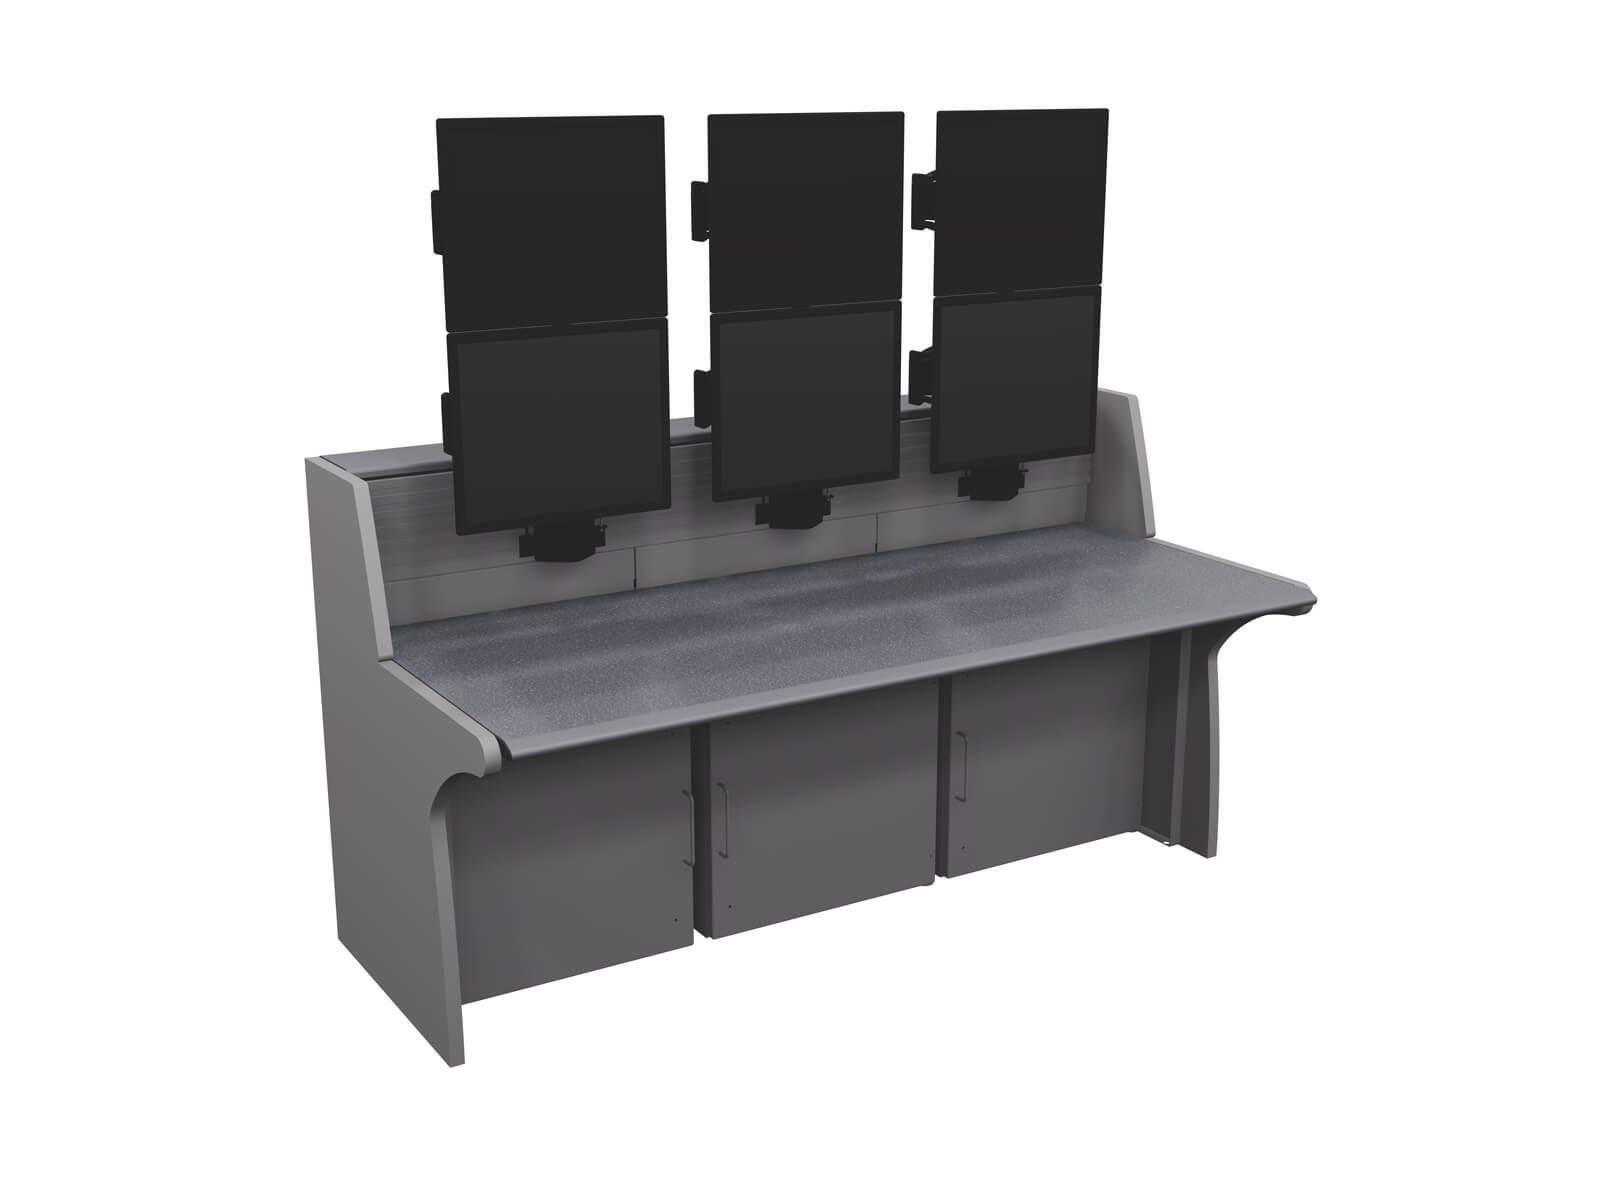 Modular console solutions for government